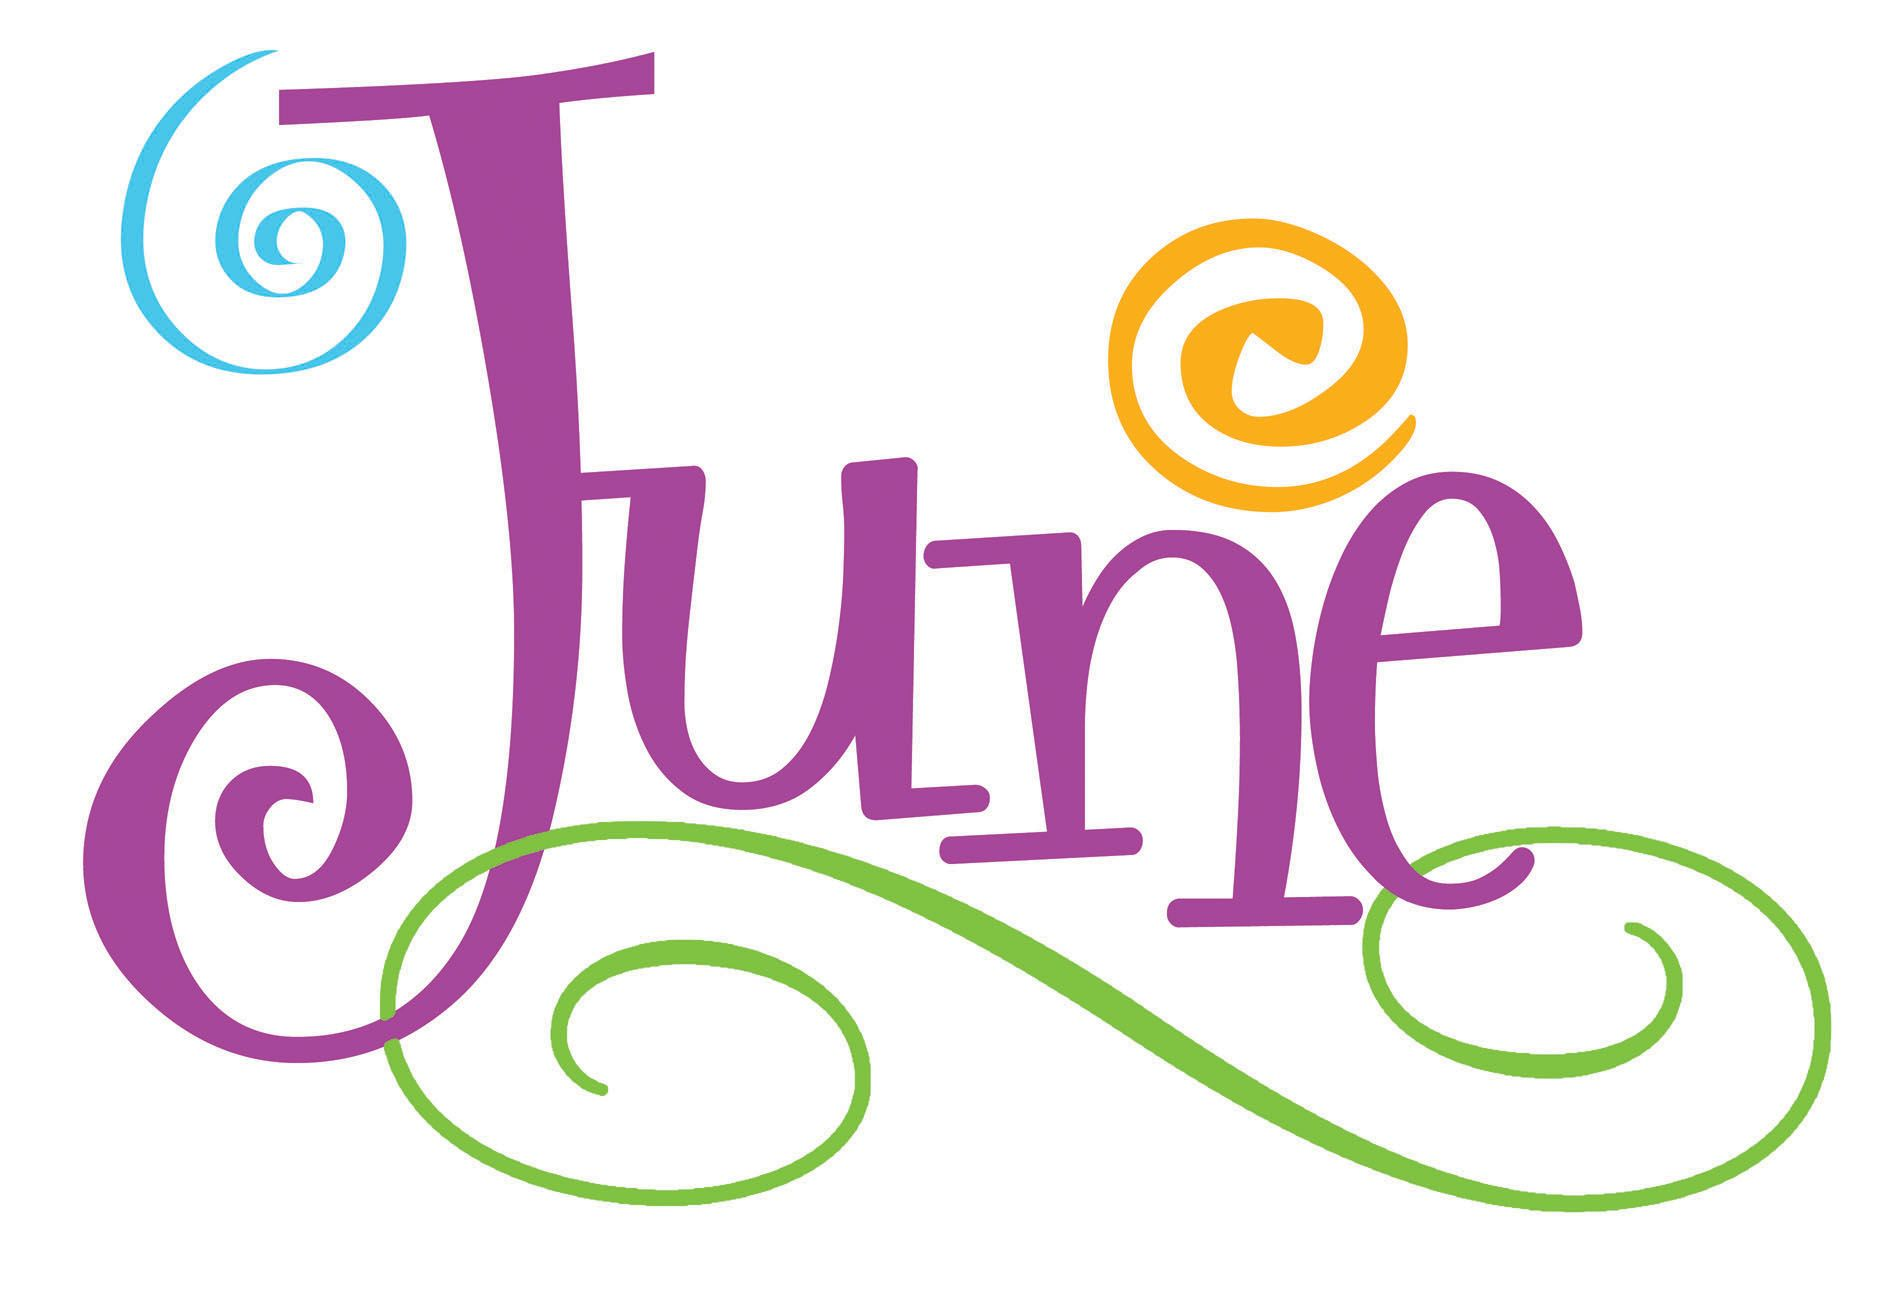 Hello on pinterest. June clipart